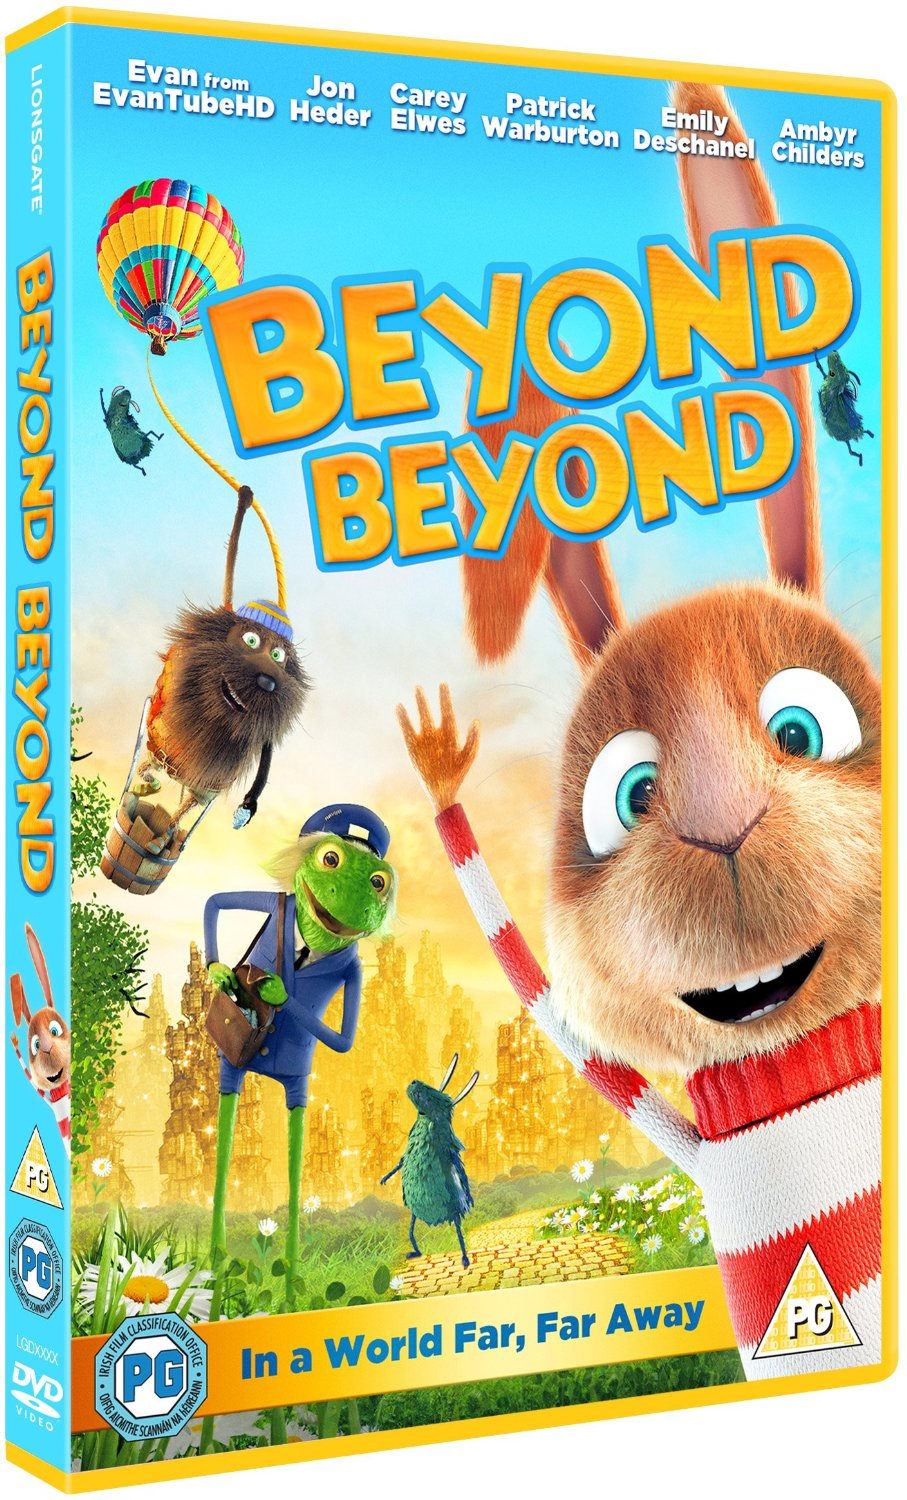 Beyond Beyond, teach children how to cope with death, Easter 2016 animation